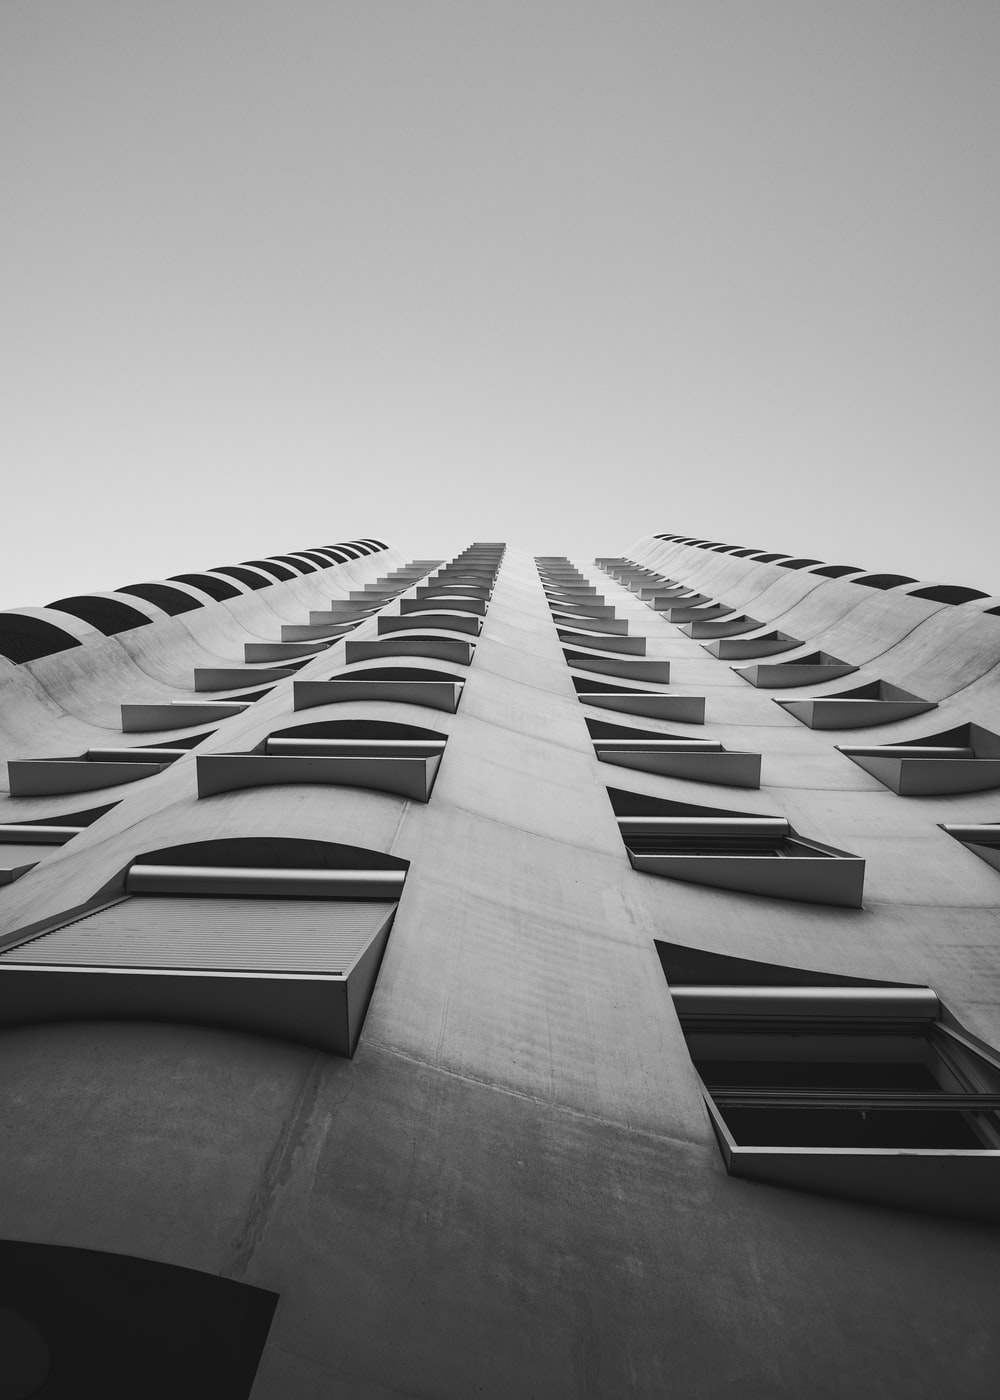 low-angle photography of gray concrete building